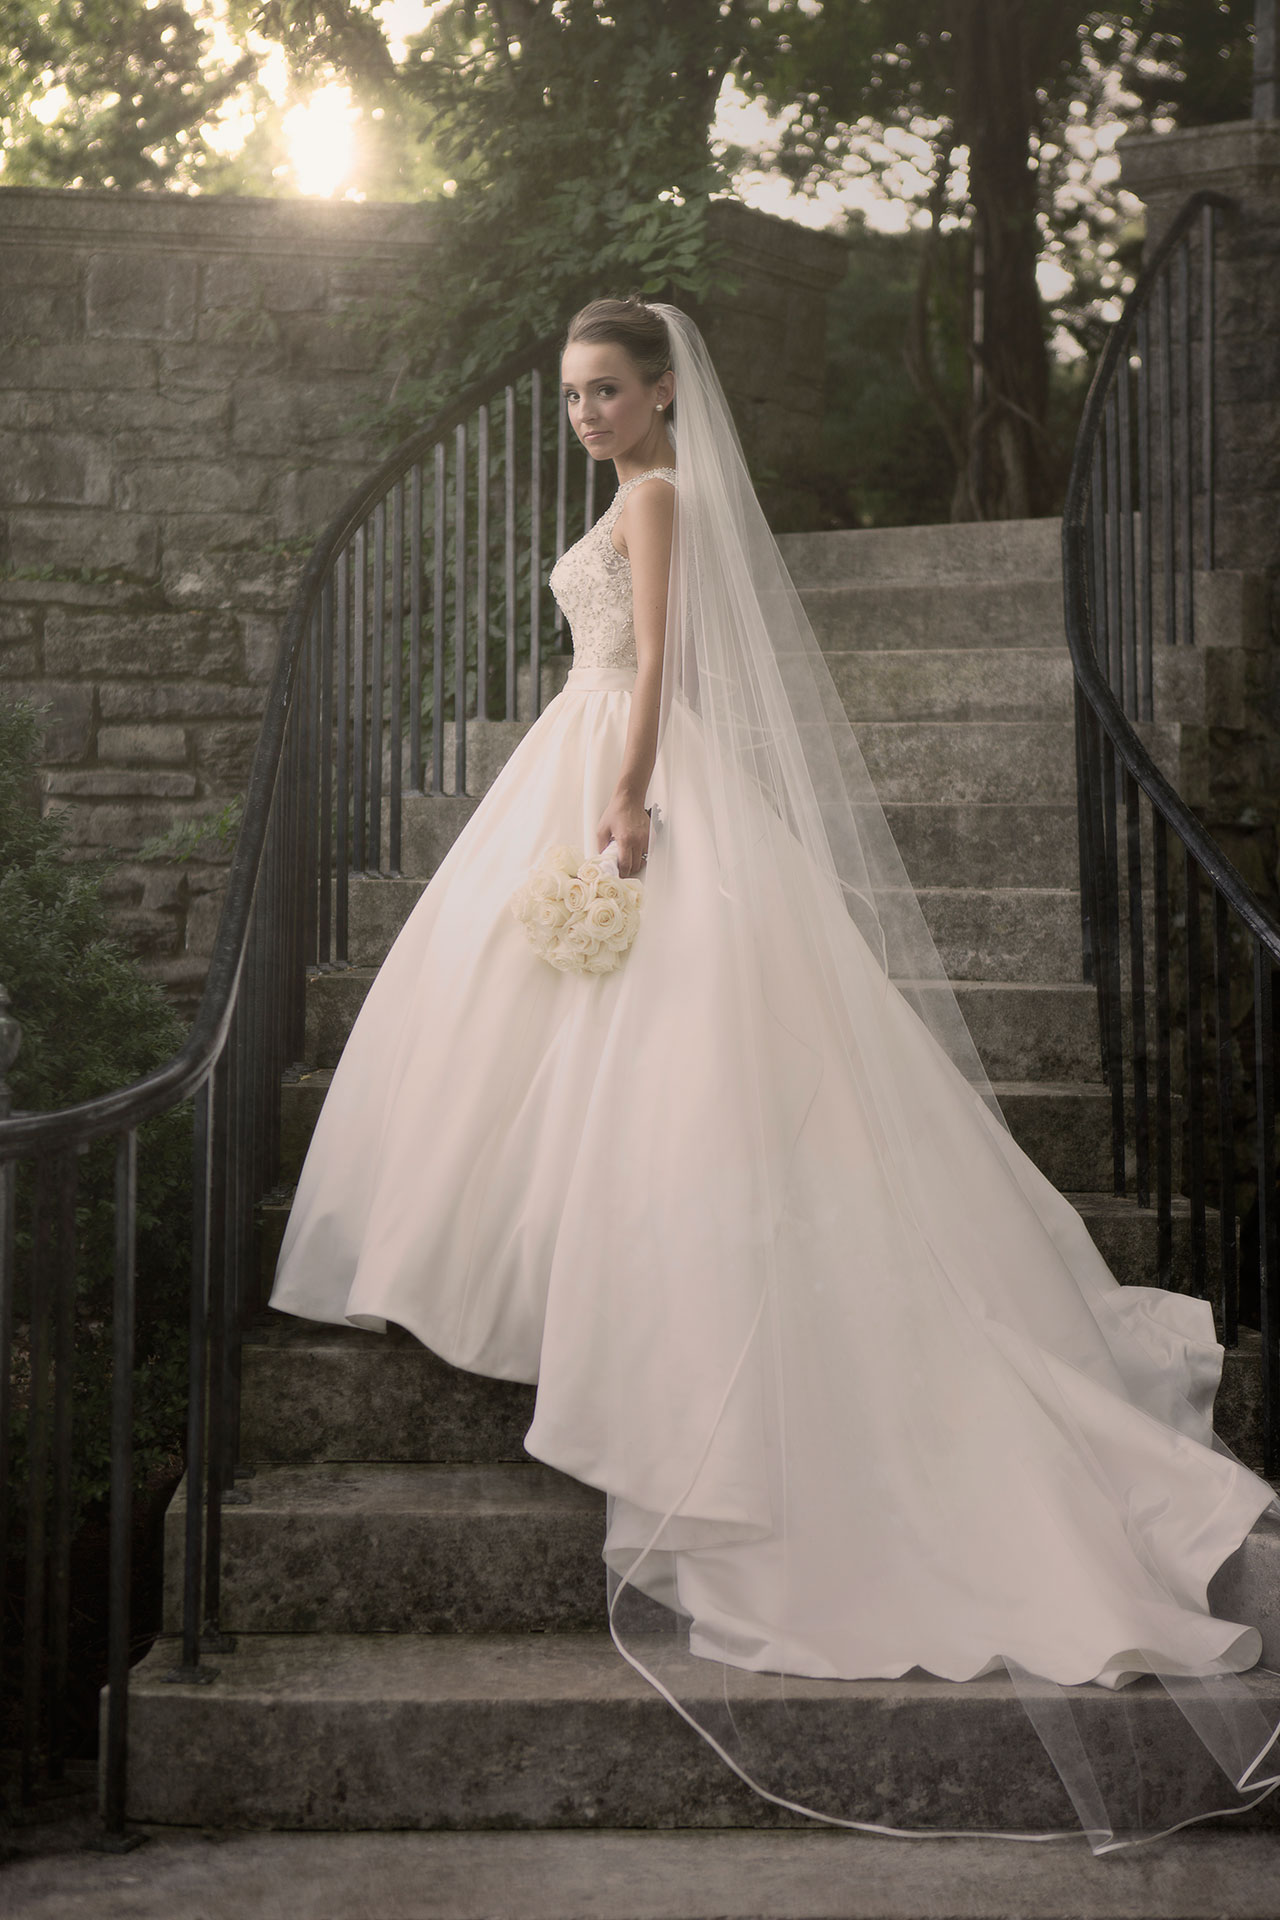 Gormsen-Hamilton-Wedding-Dress